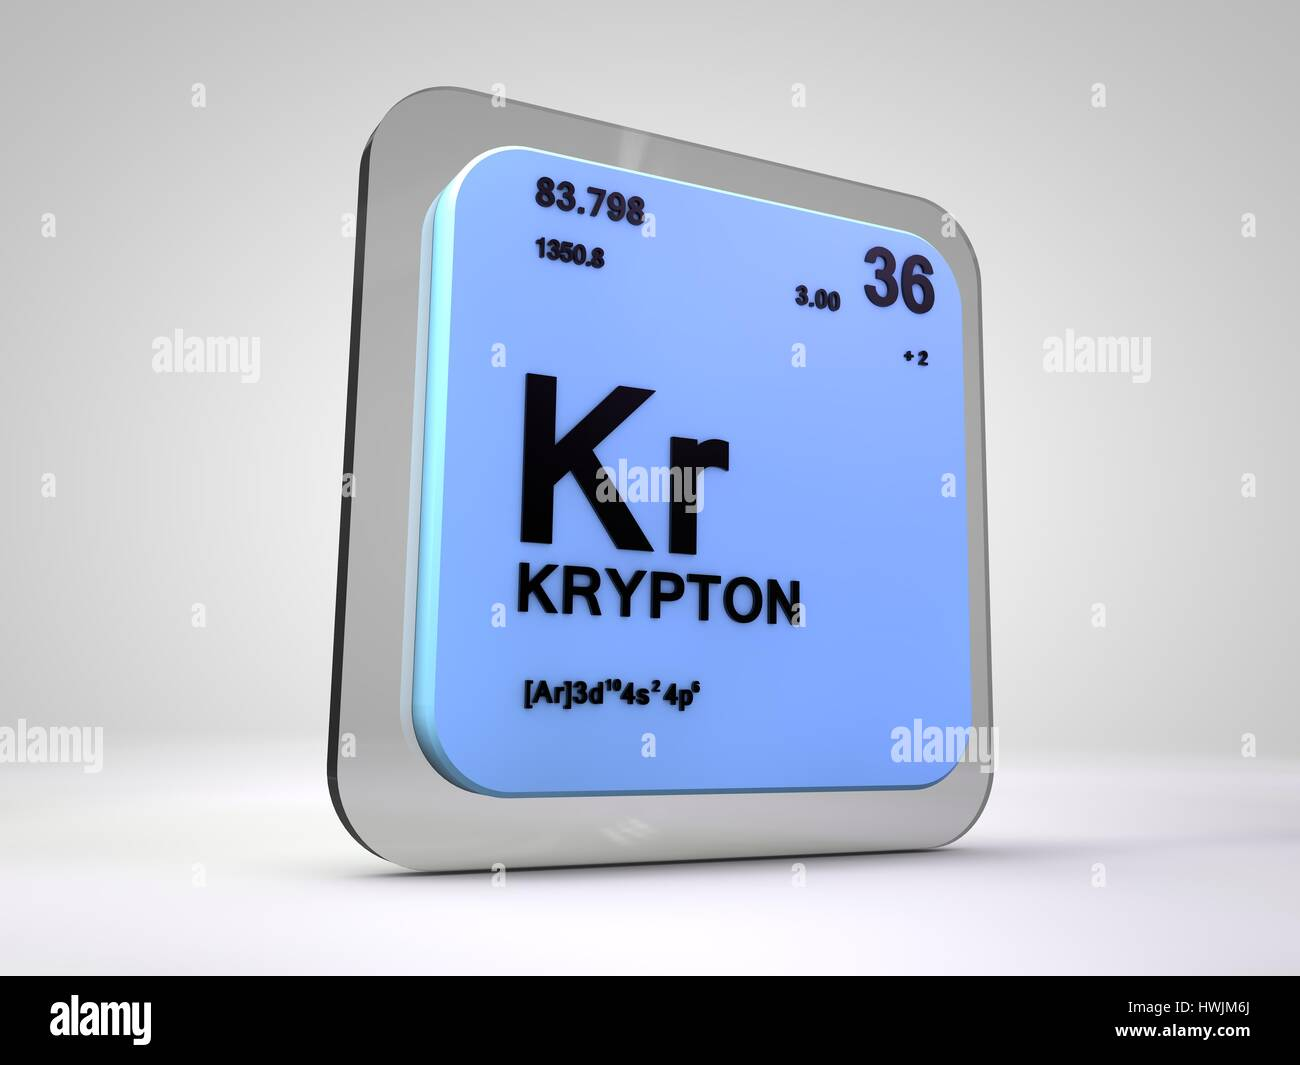 Krypton kr chemical element periodic table 3d render stock photo krypton kr chemical element periodic table 3d render urtaz Choice Image